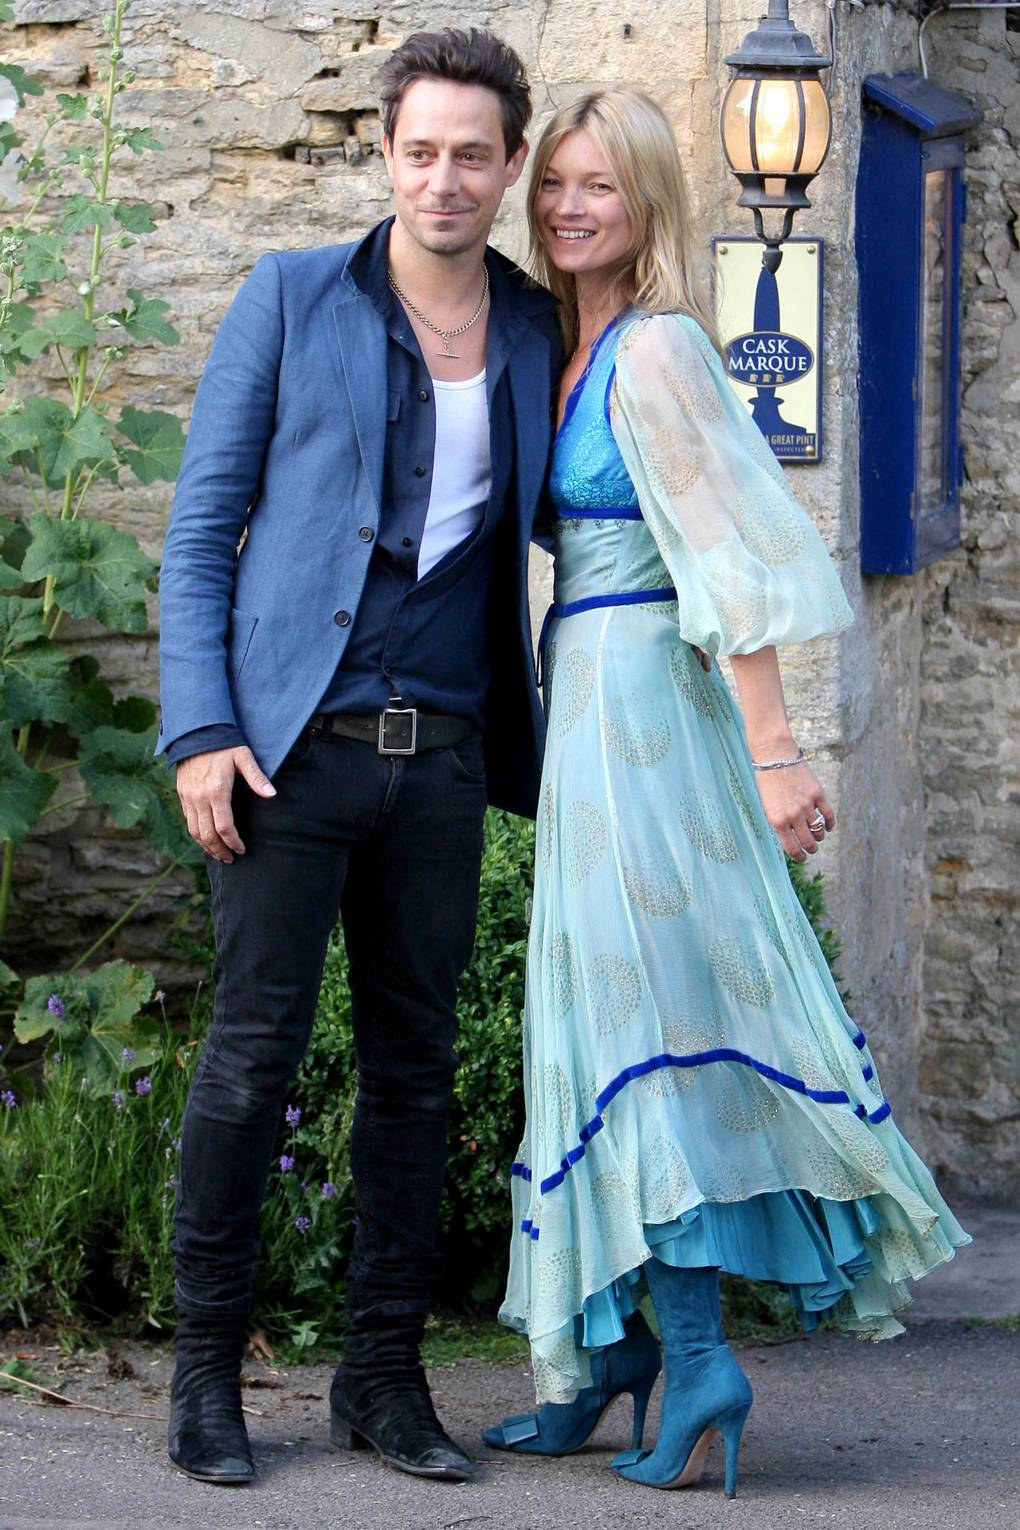 Kate Moss and Jamie Hince wedding dress and guest pictures - Latest ...